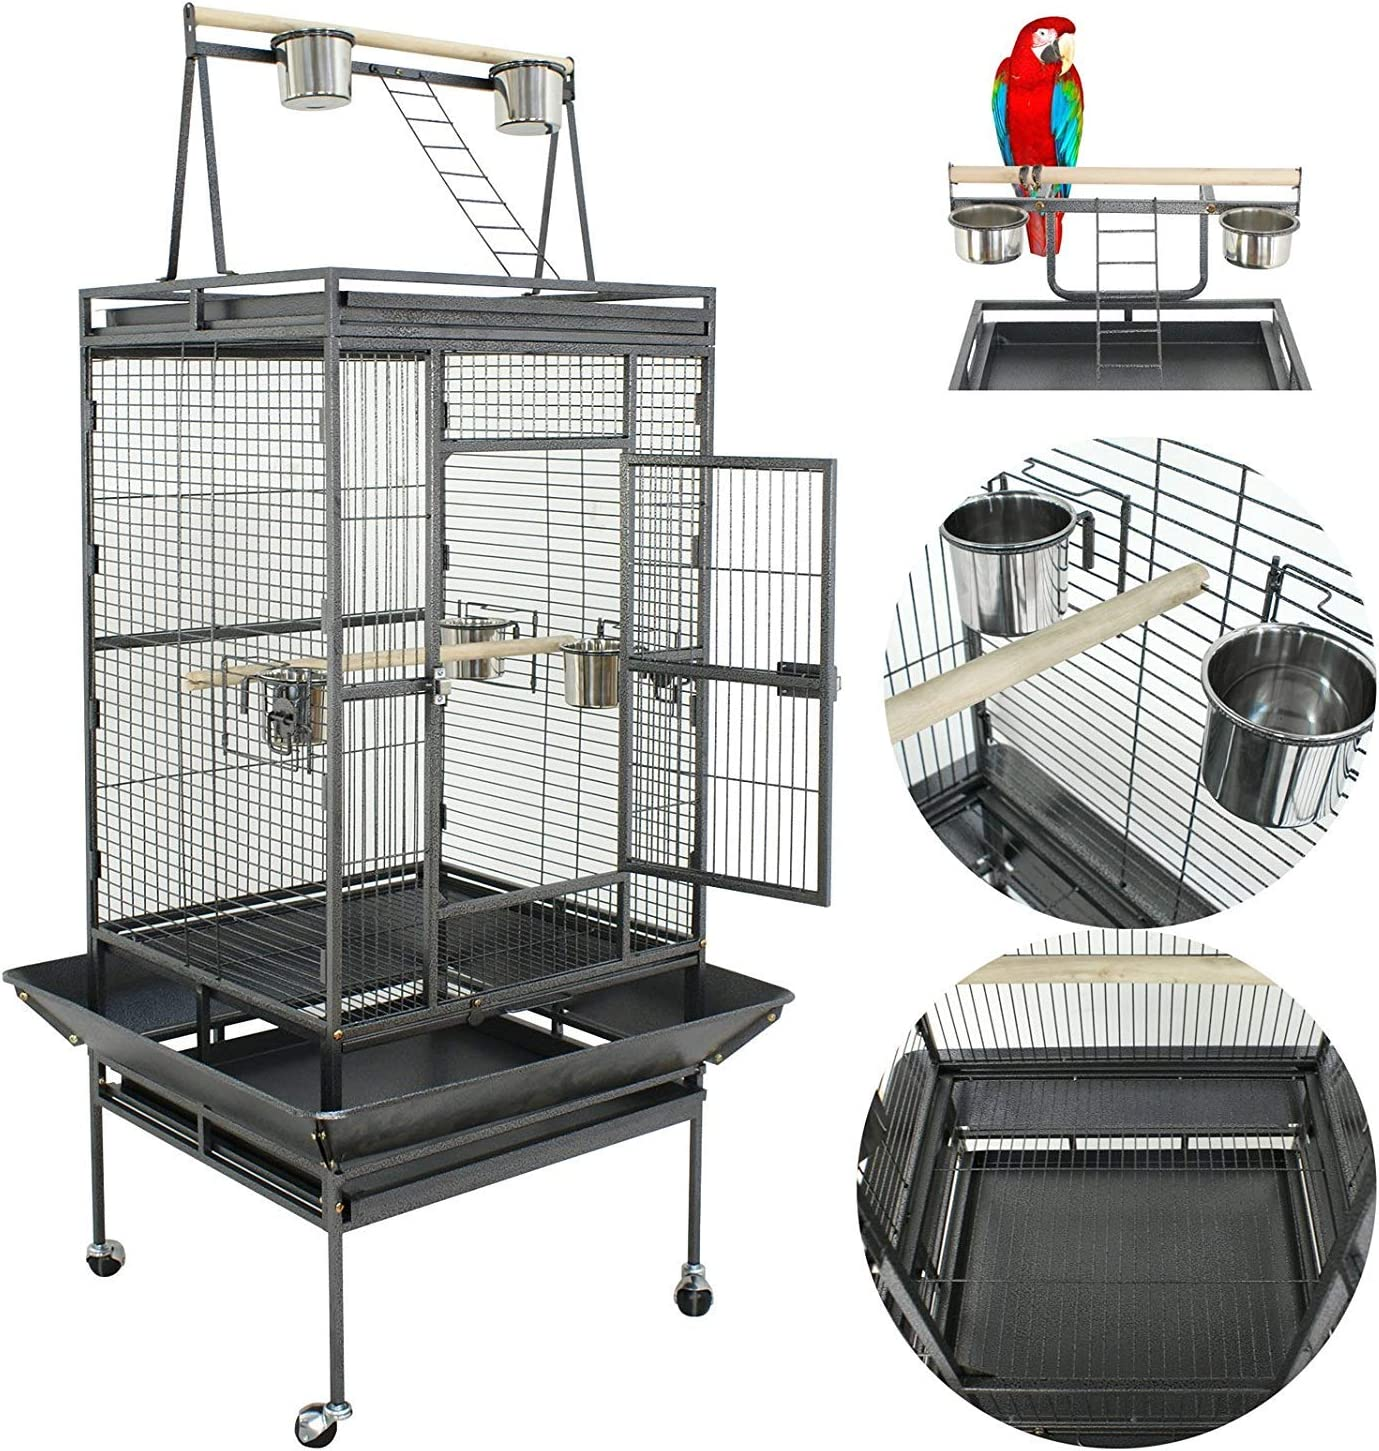 Nova Microdermabrasion 61 68 Inches Large Cage Top Bird Sales of SALE items from Discount mail order new works Par Play